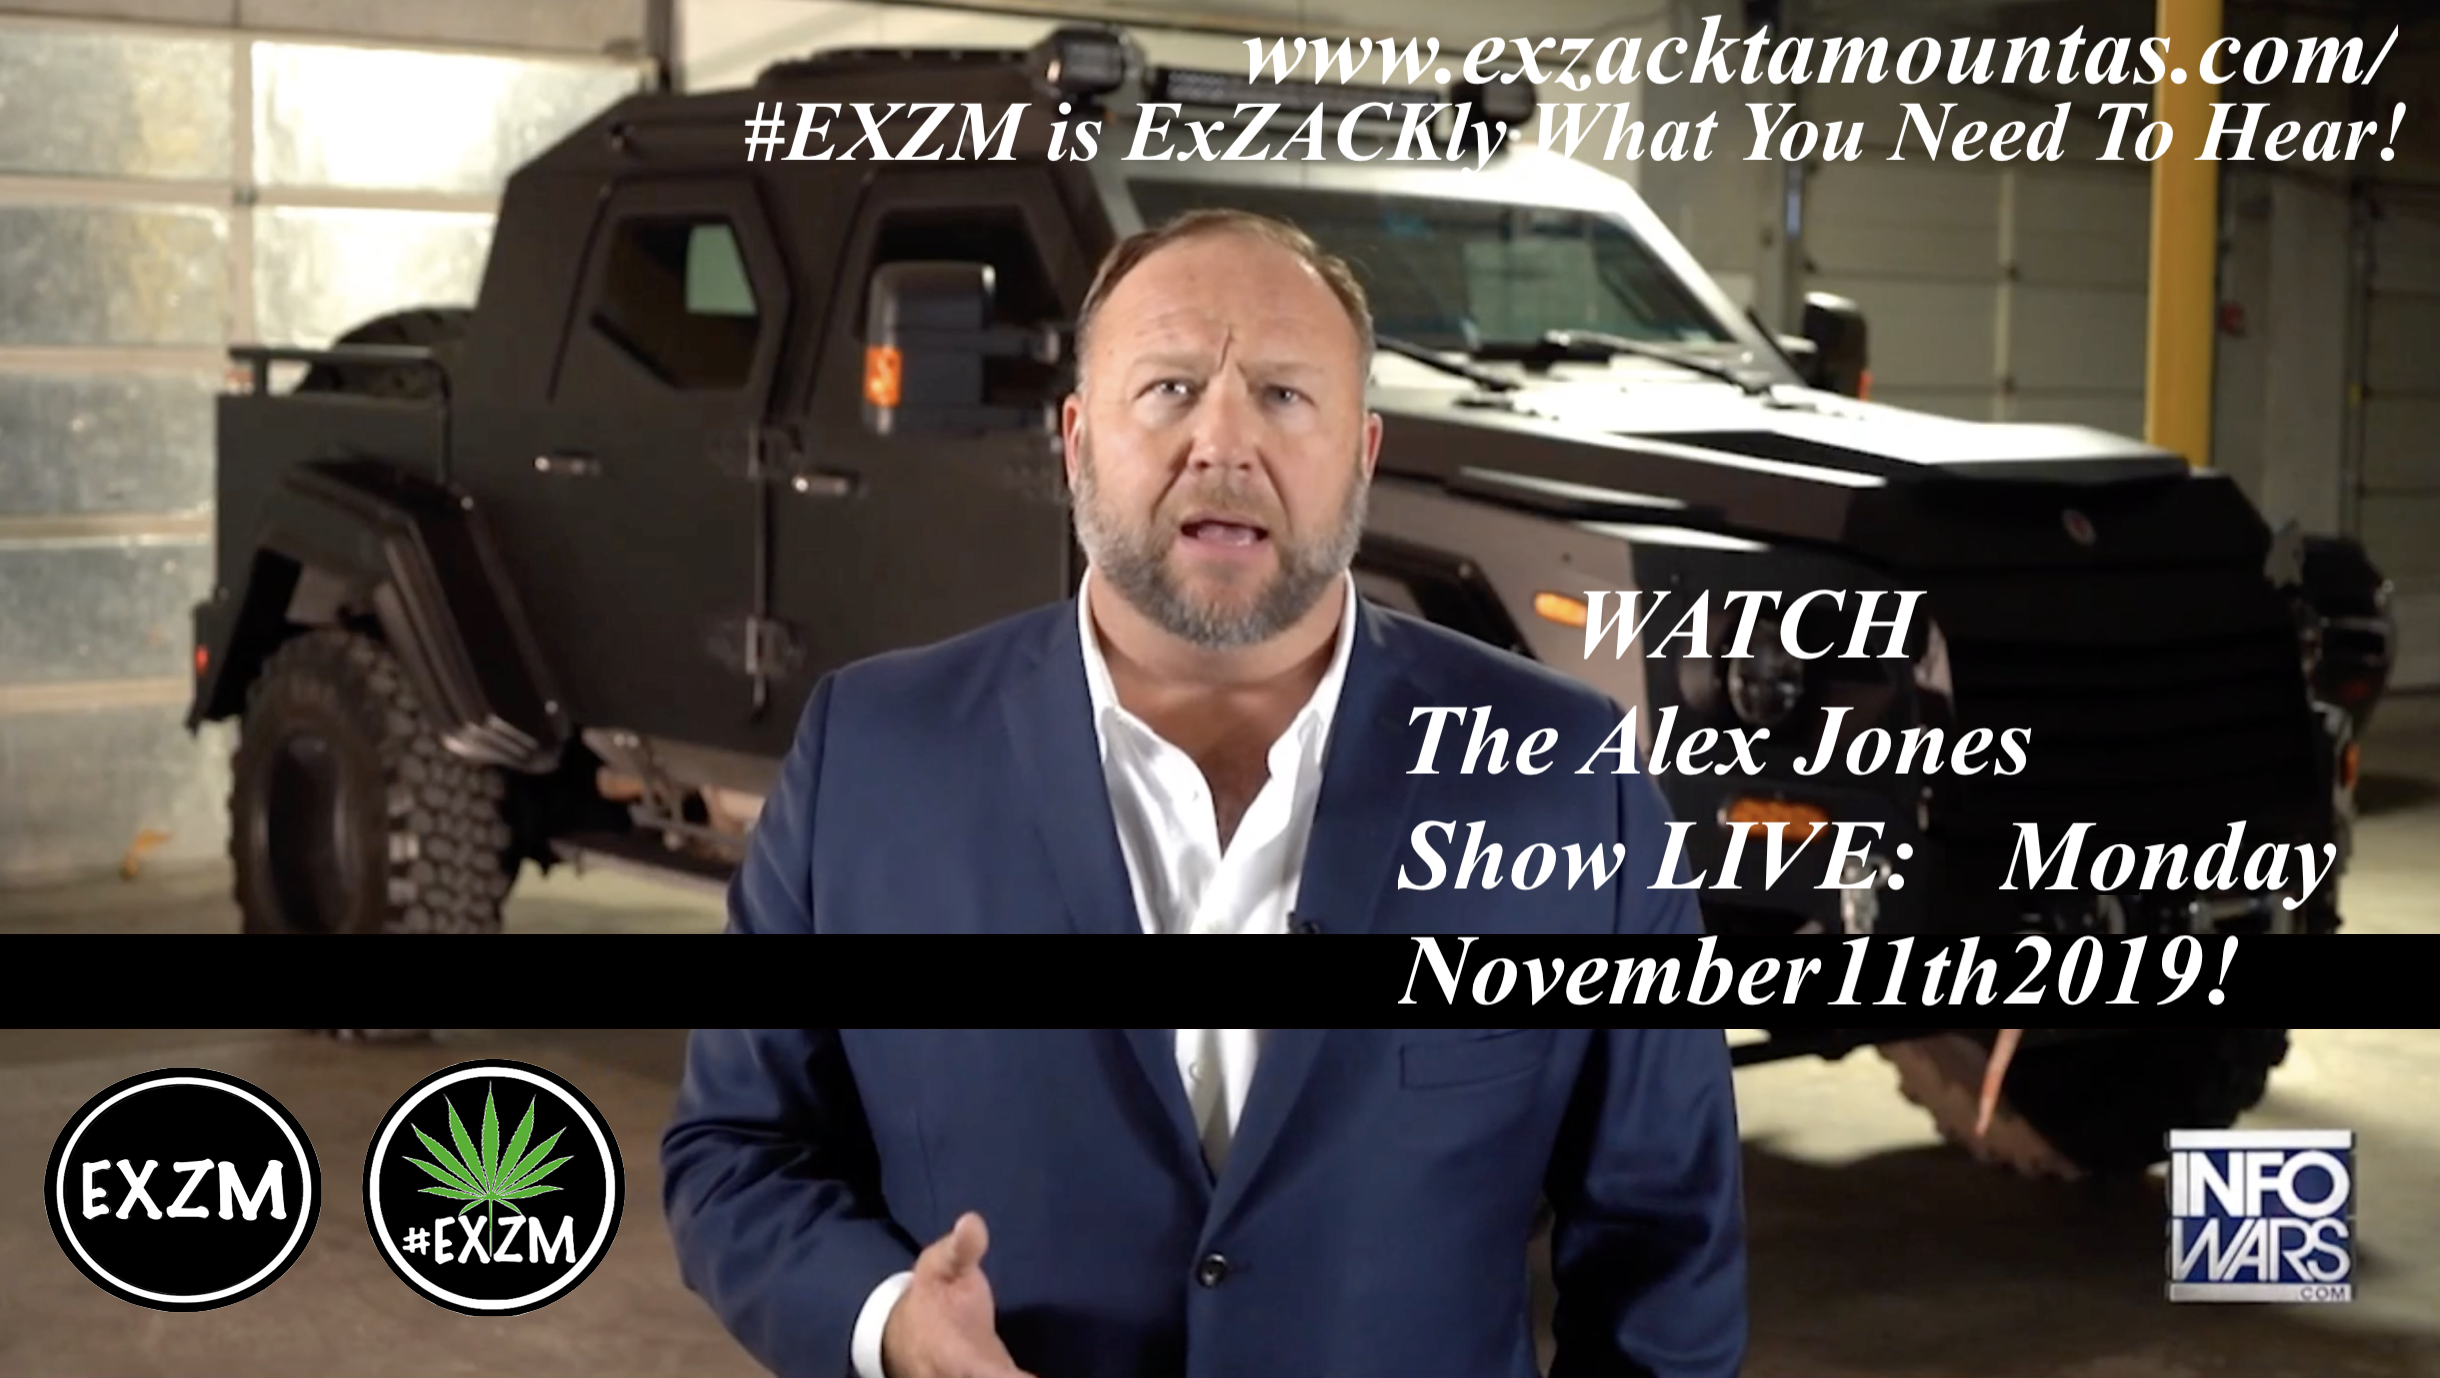 EXZM-Alex-Jones-Post-11-11-2019